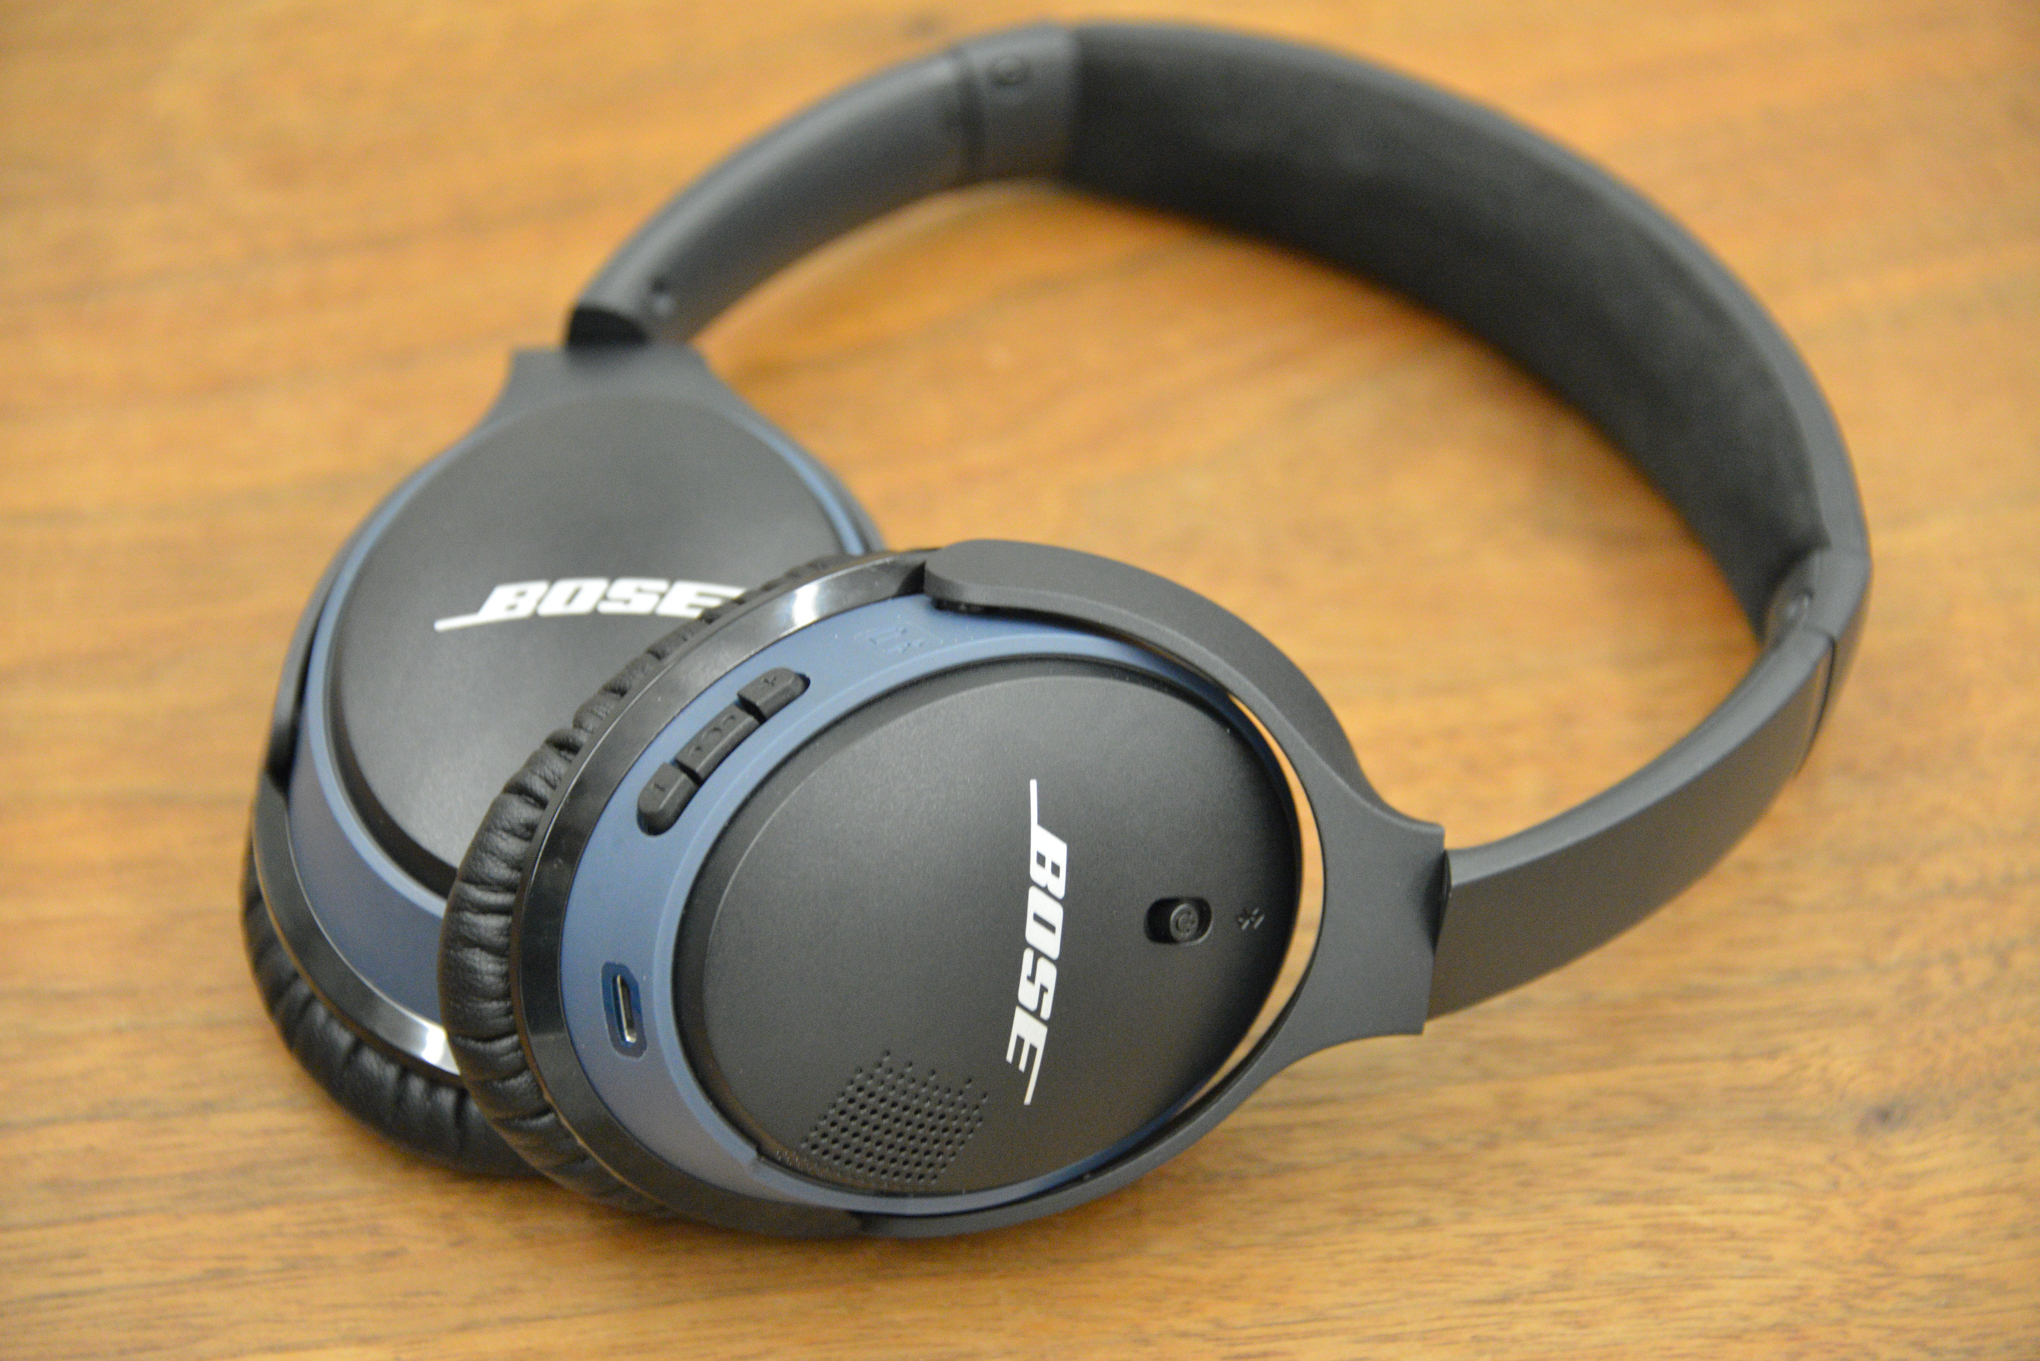 These new Bose headphones could be the most comfortable you